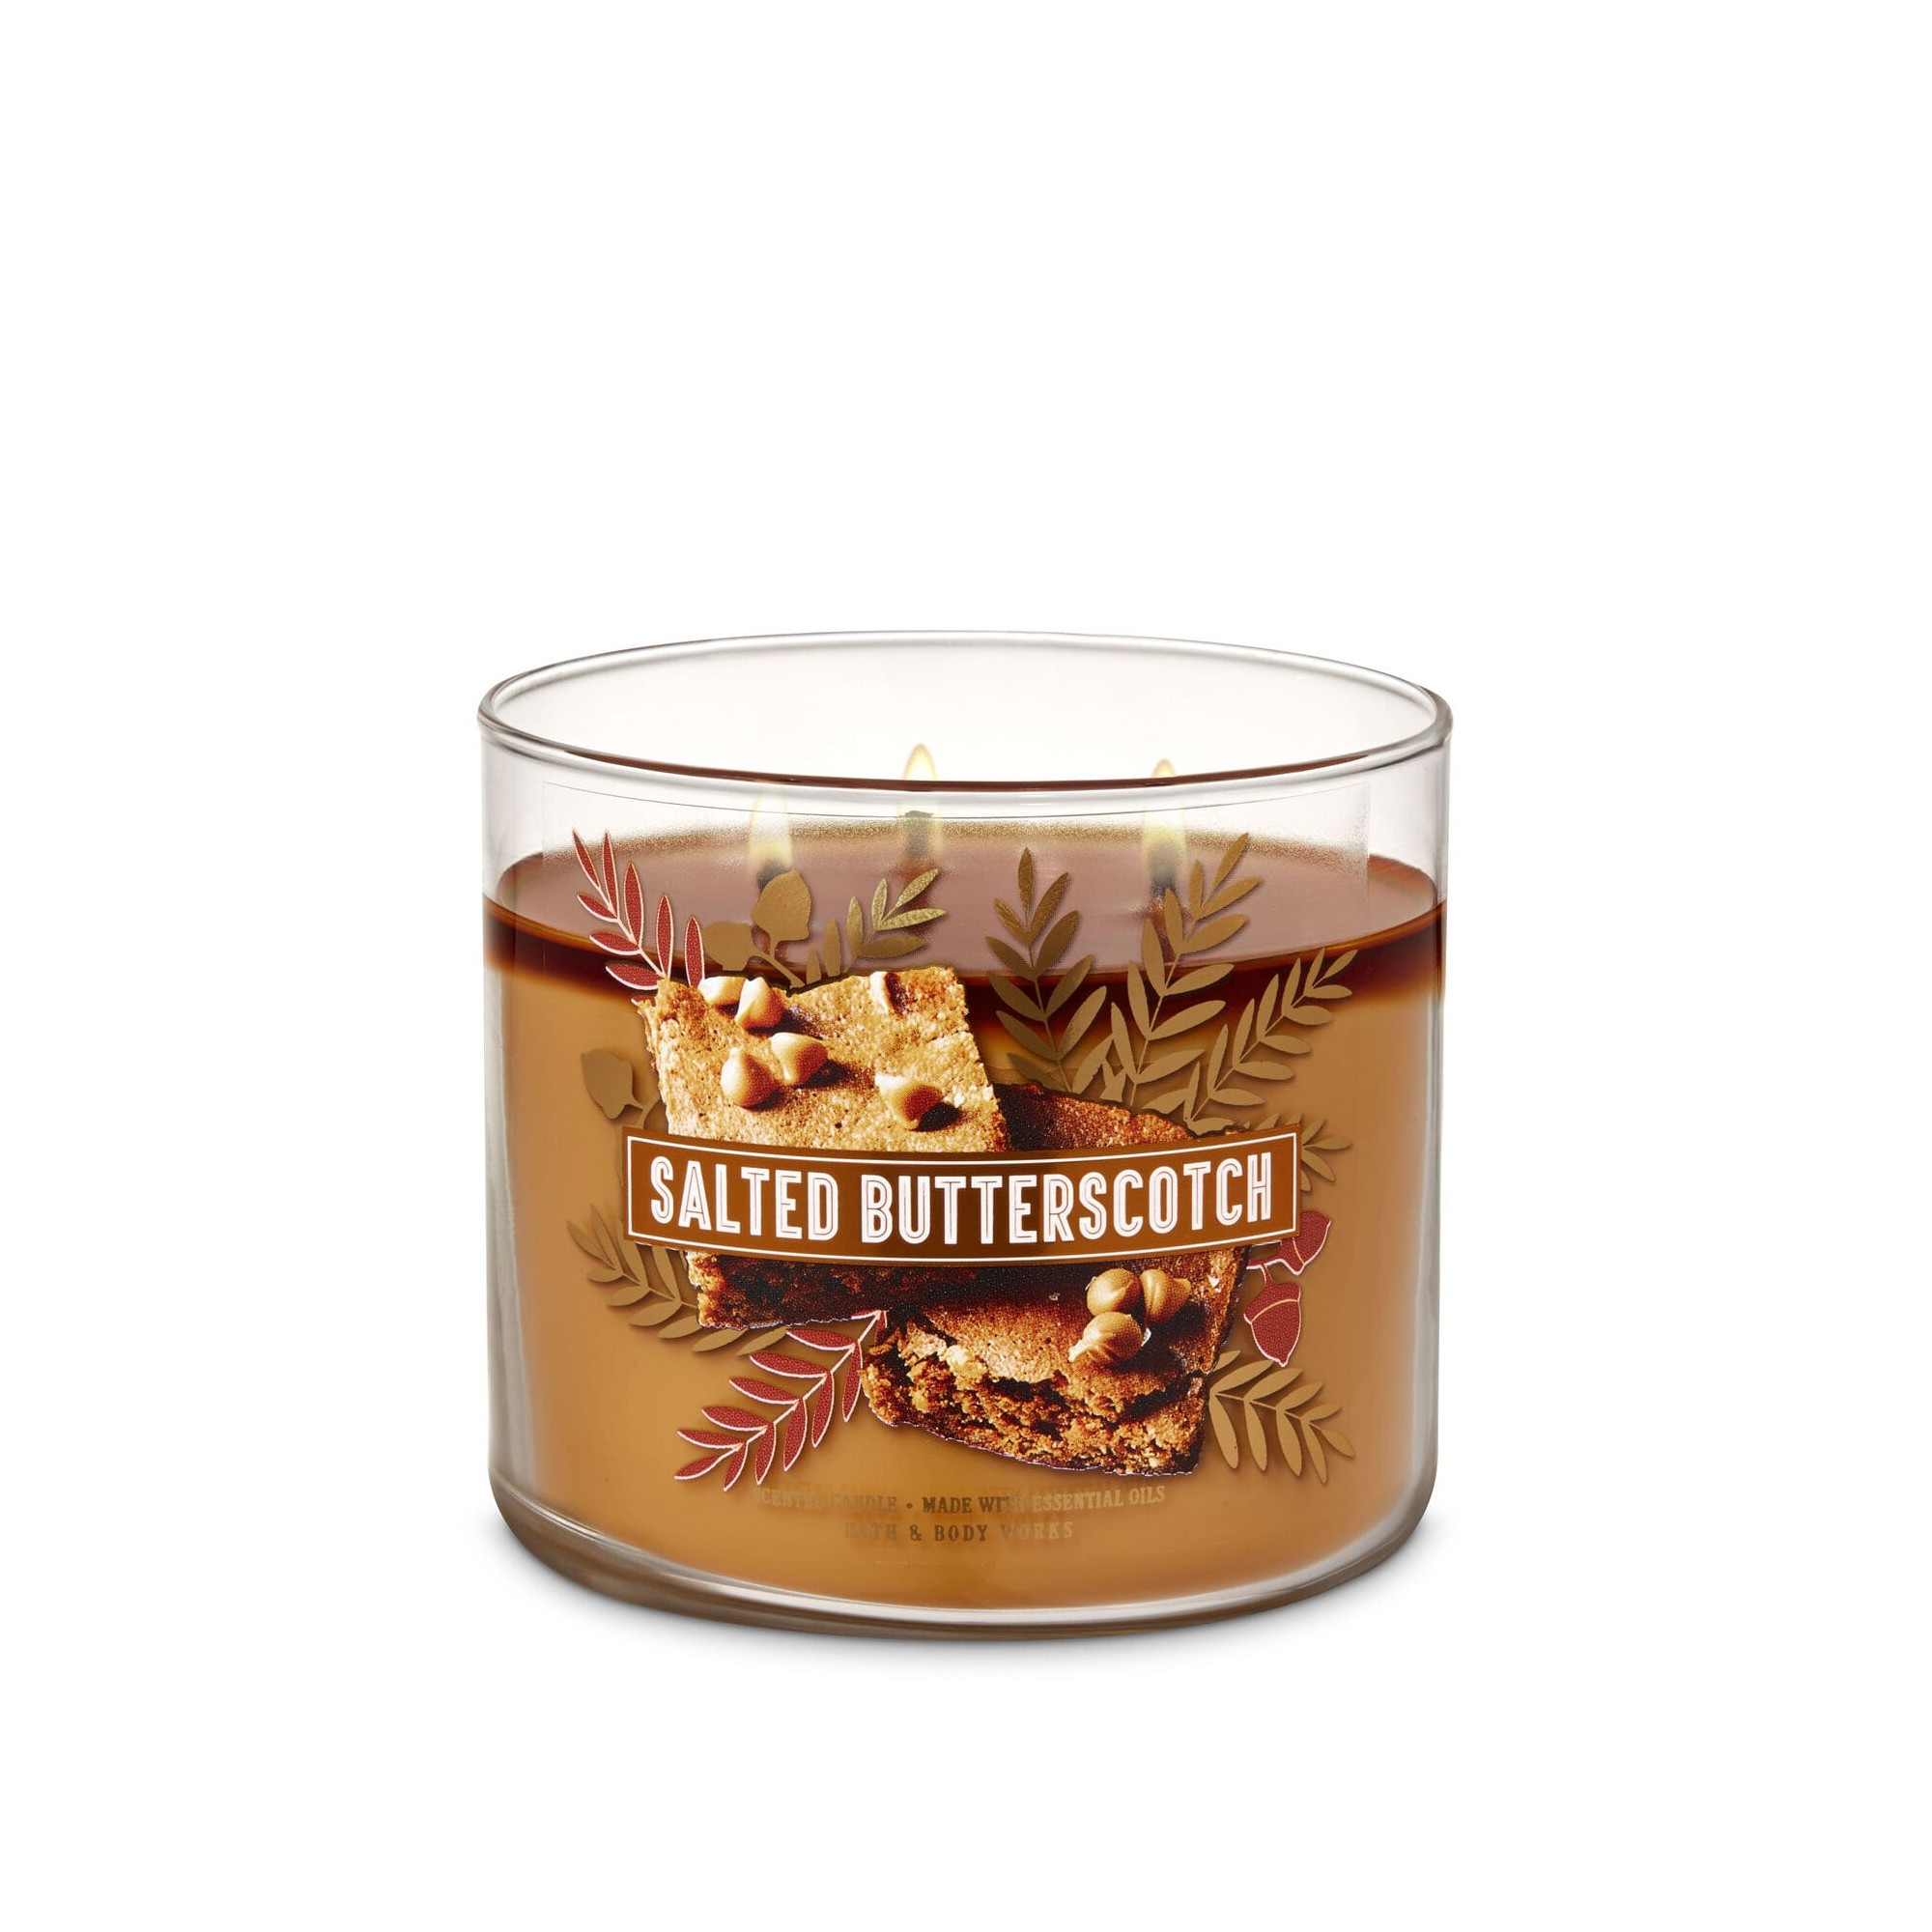 Bath & Body Works Salted Butterscotch 3 Wick Scented Candle